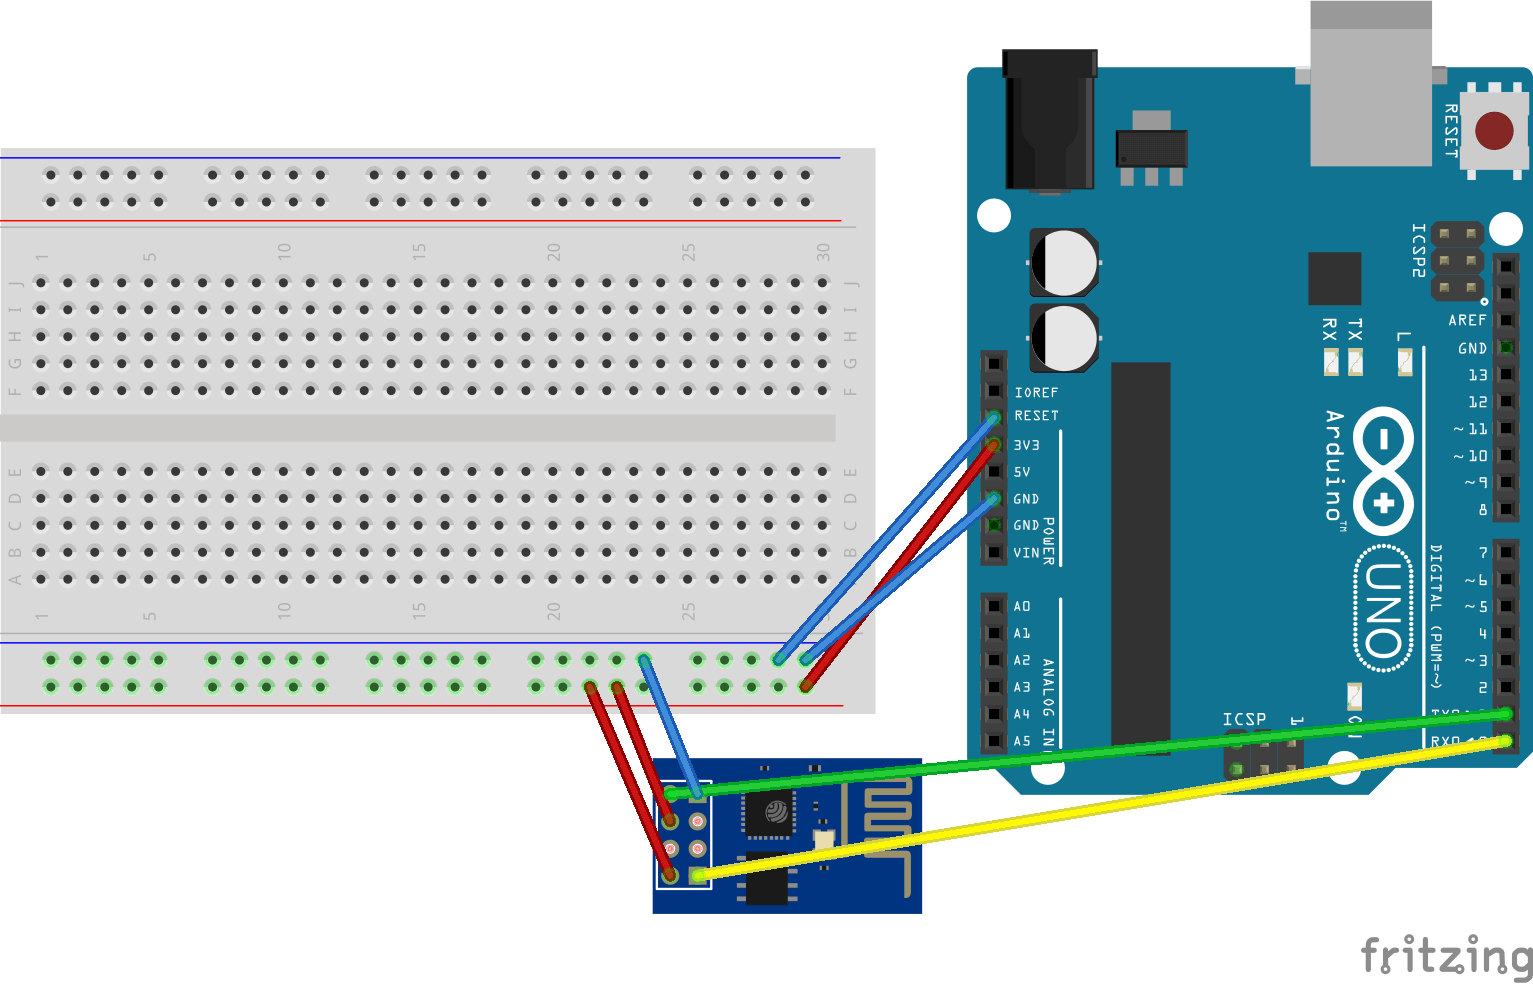 Uno esp connection ho79gxjivx yqsivepodd